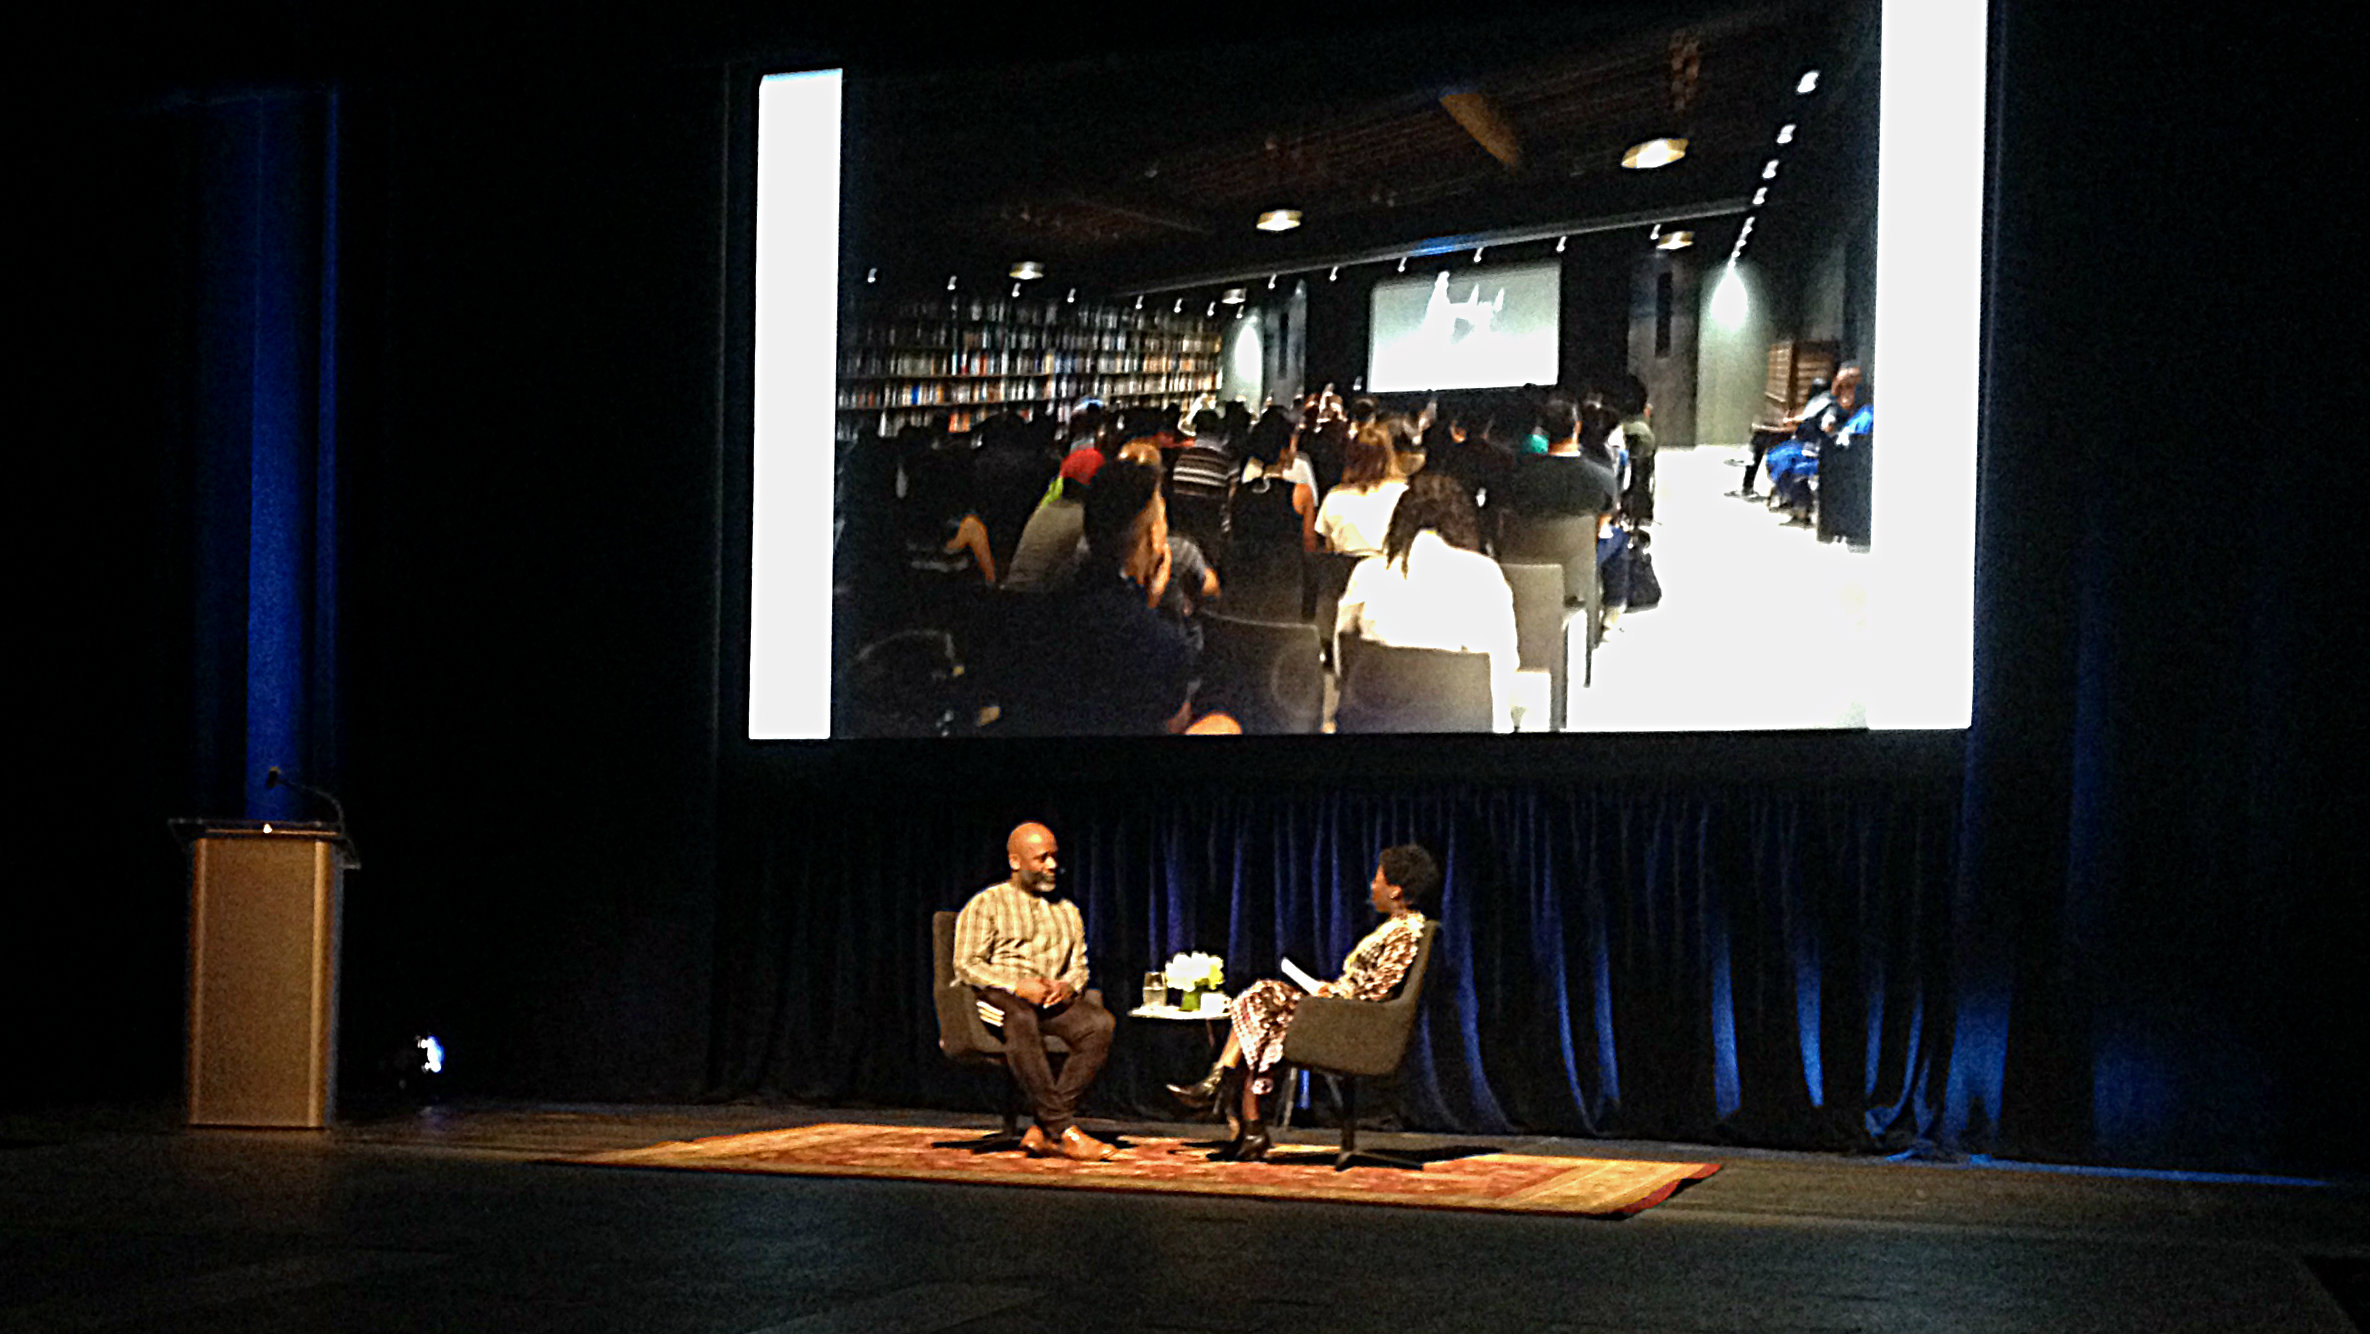 Theaster Gates and Thelma Golden